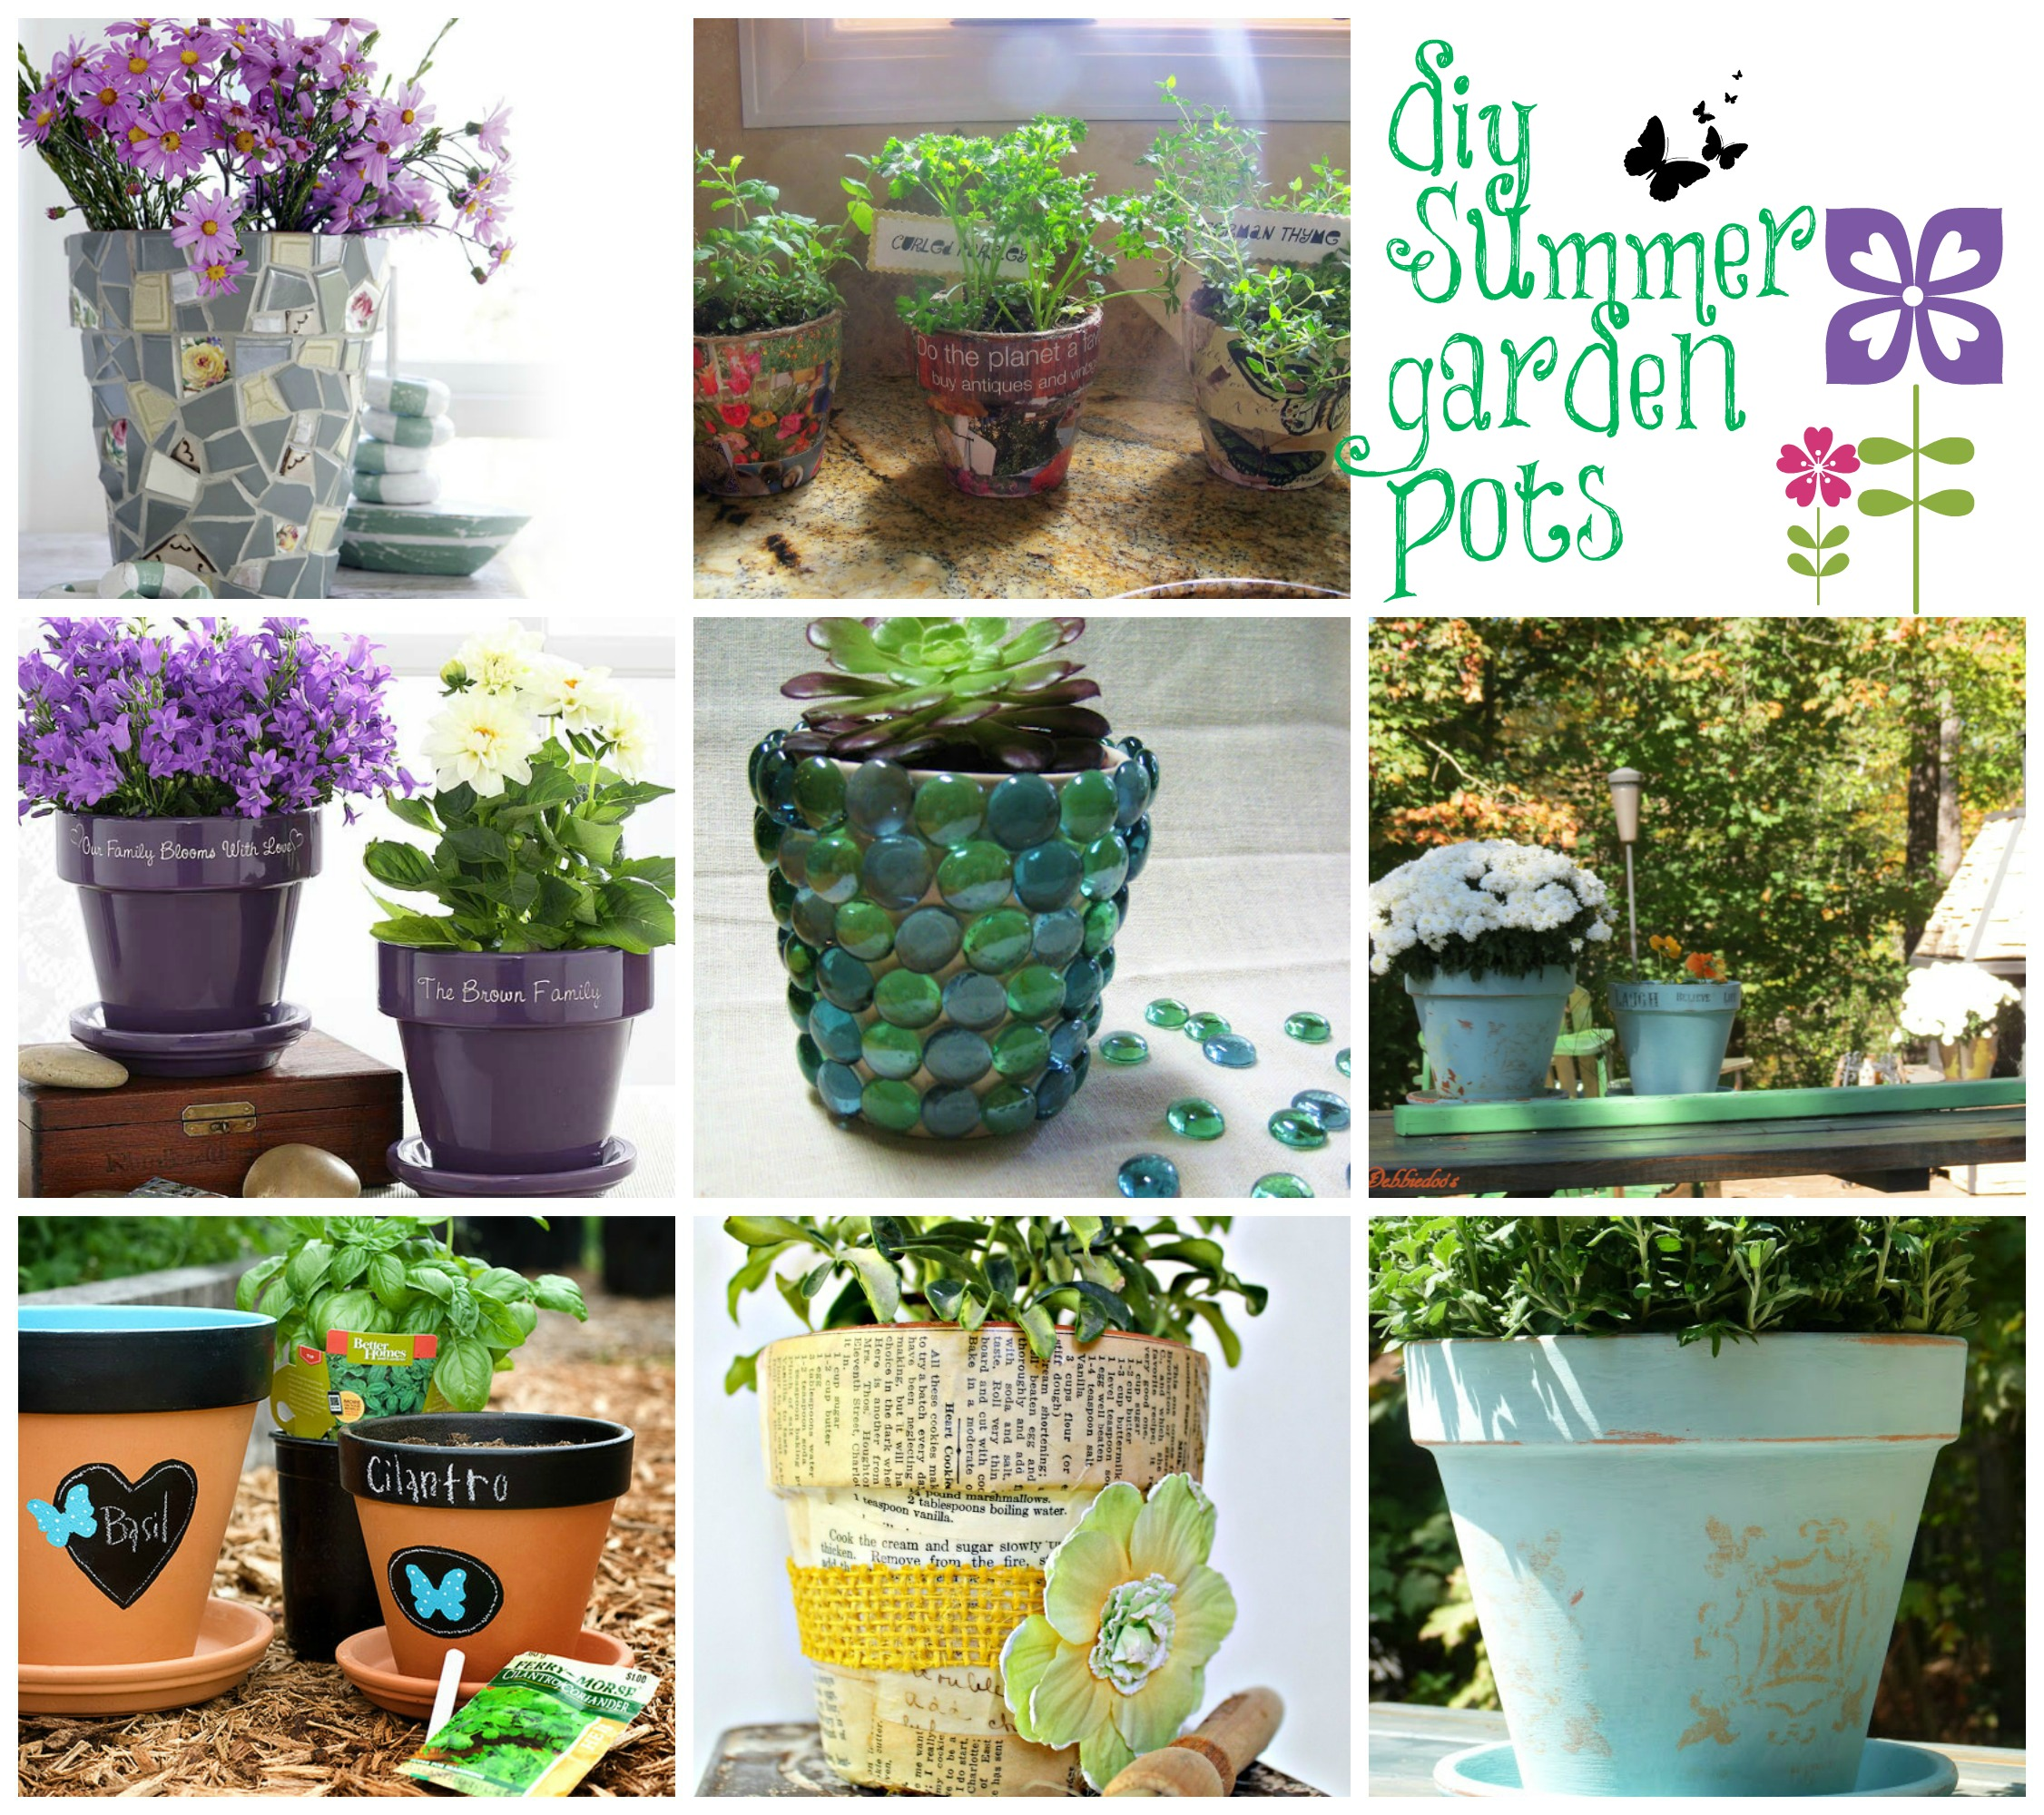 Ideas for decorating Terra cotta pots in the garden - Debbiedoo's